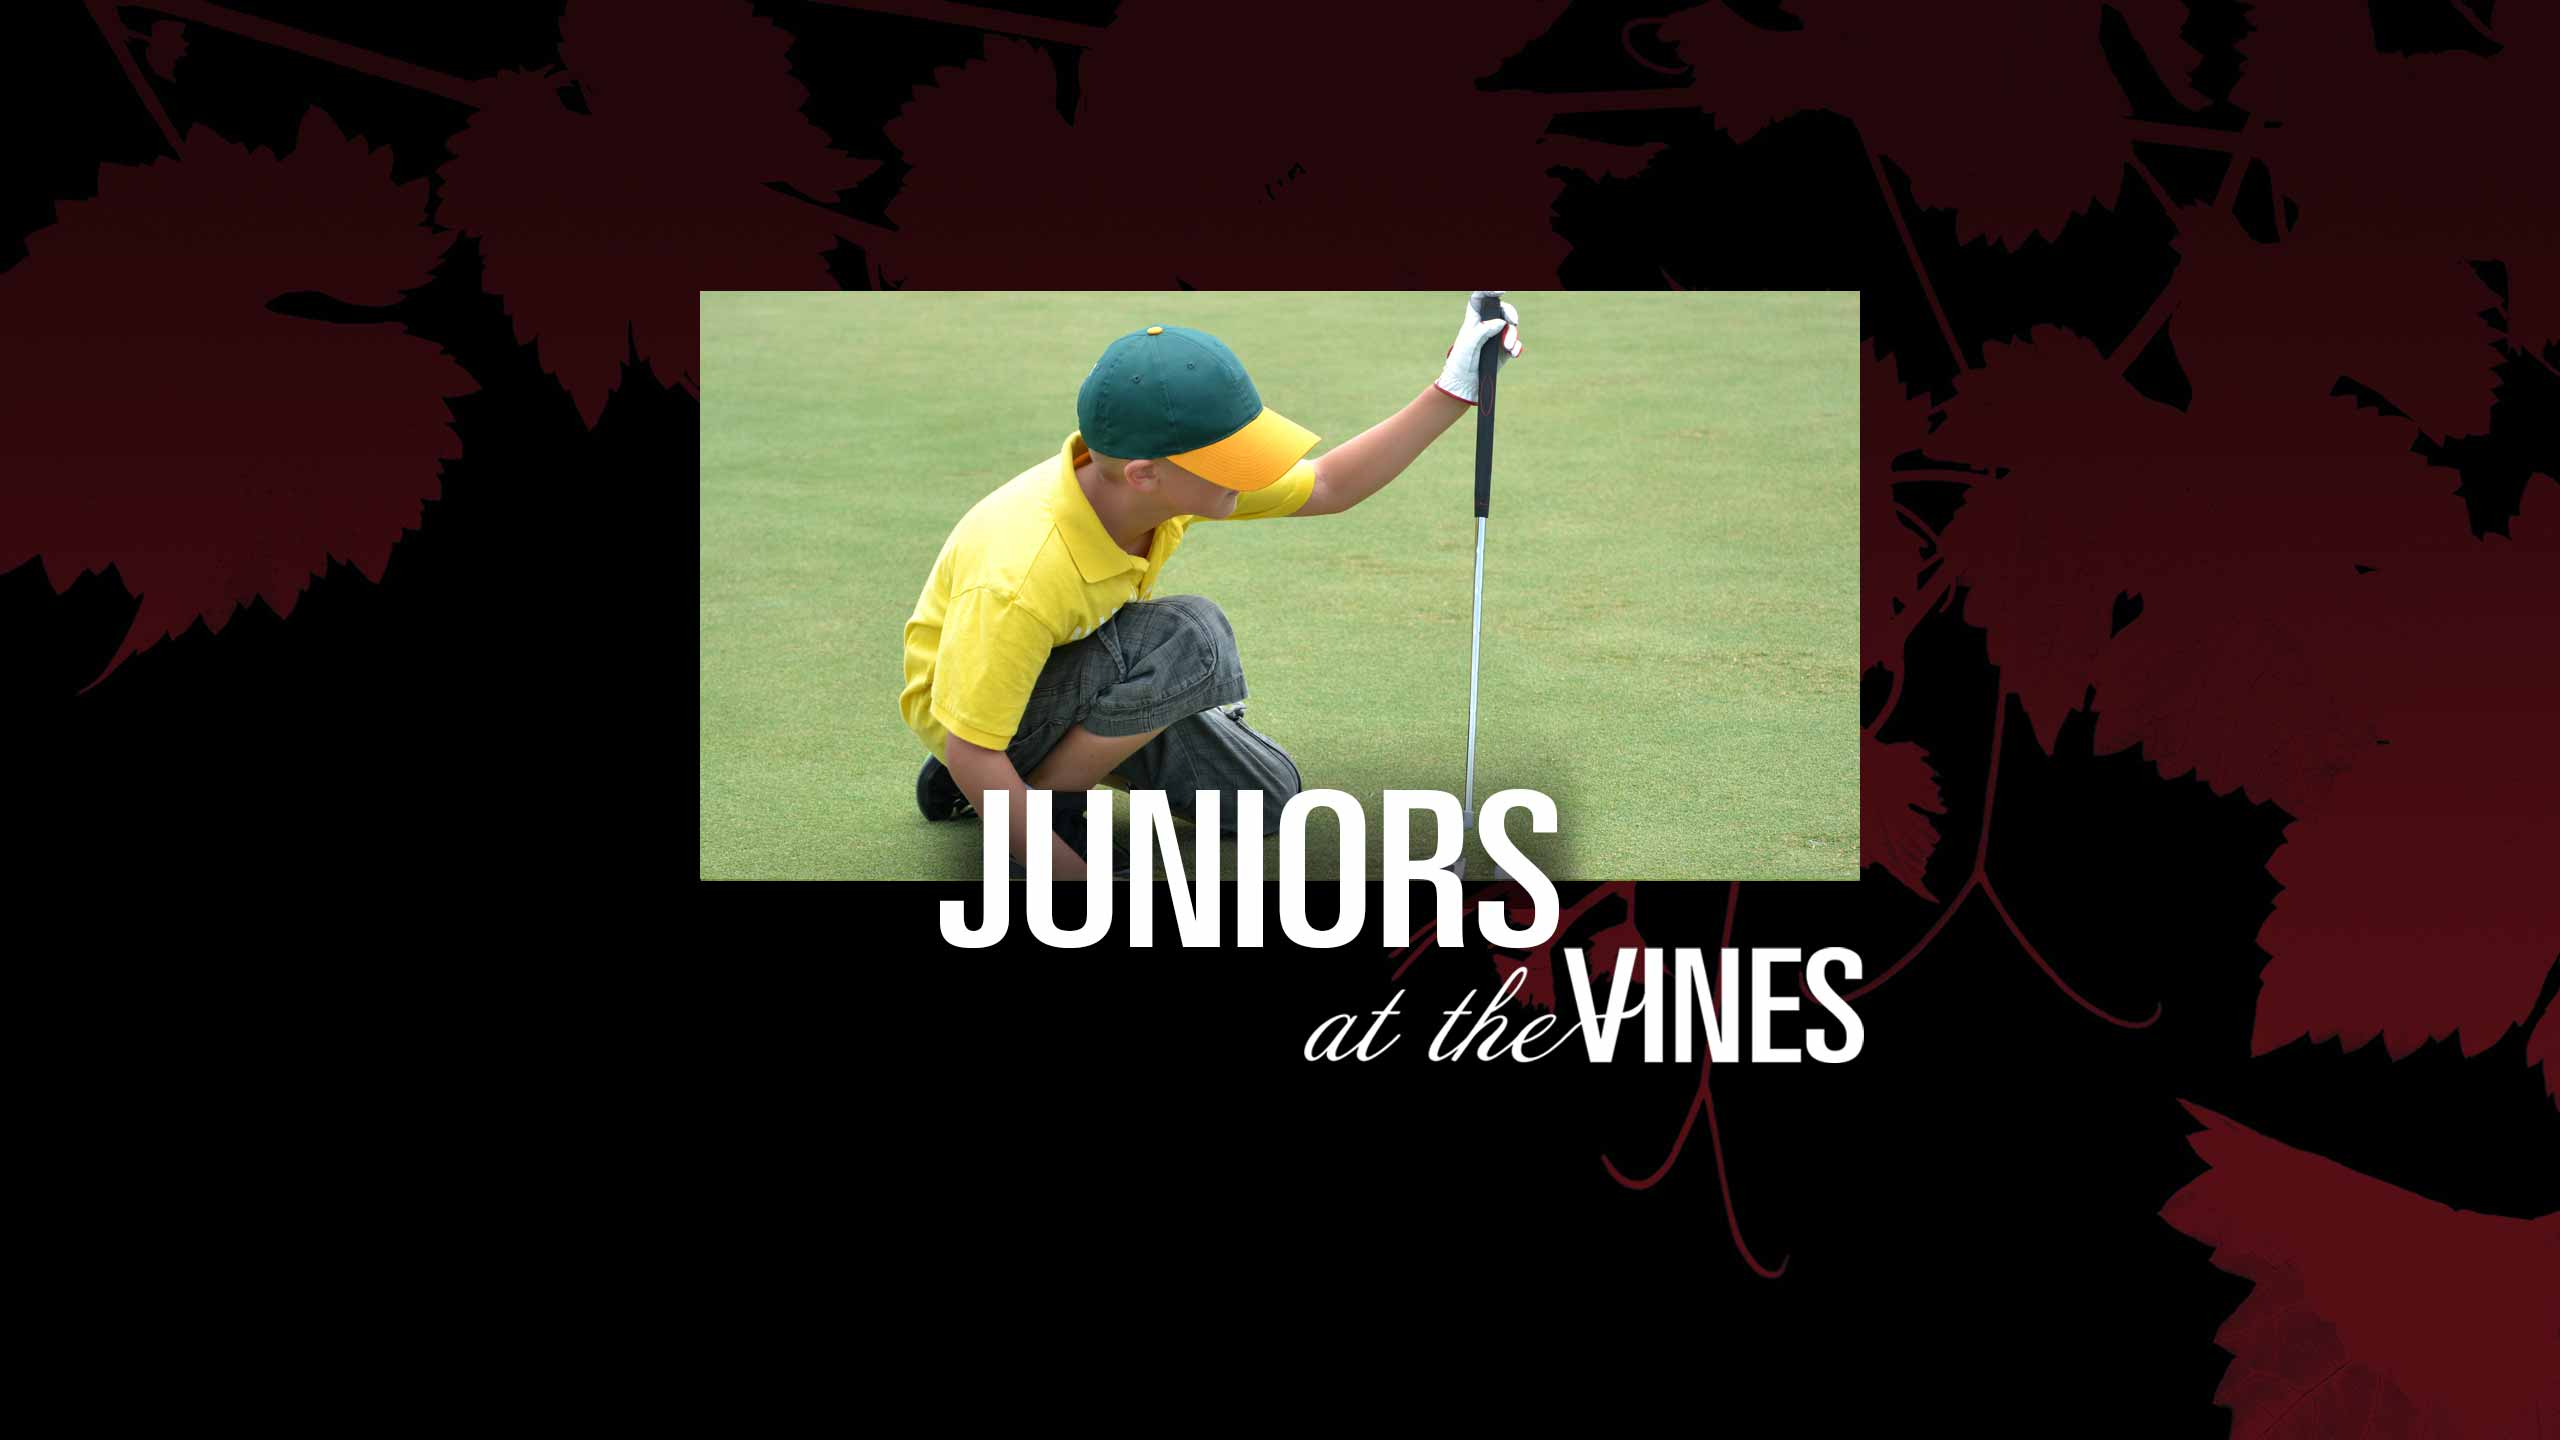 vines_juniors